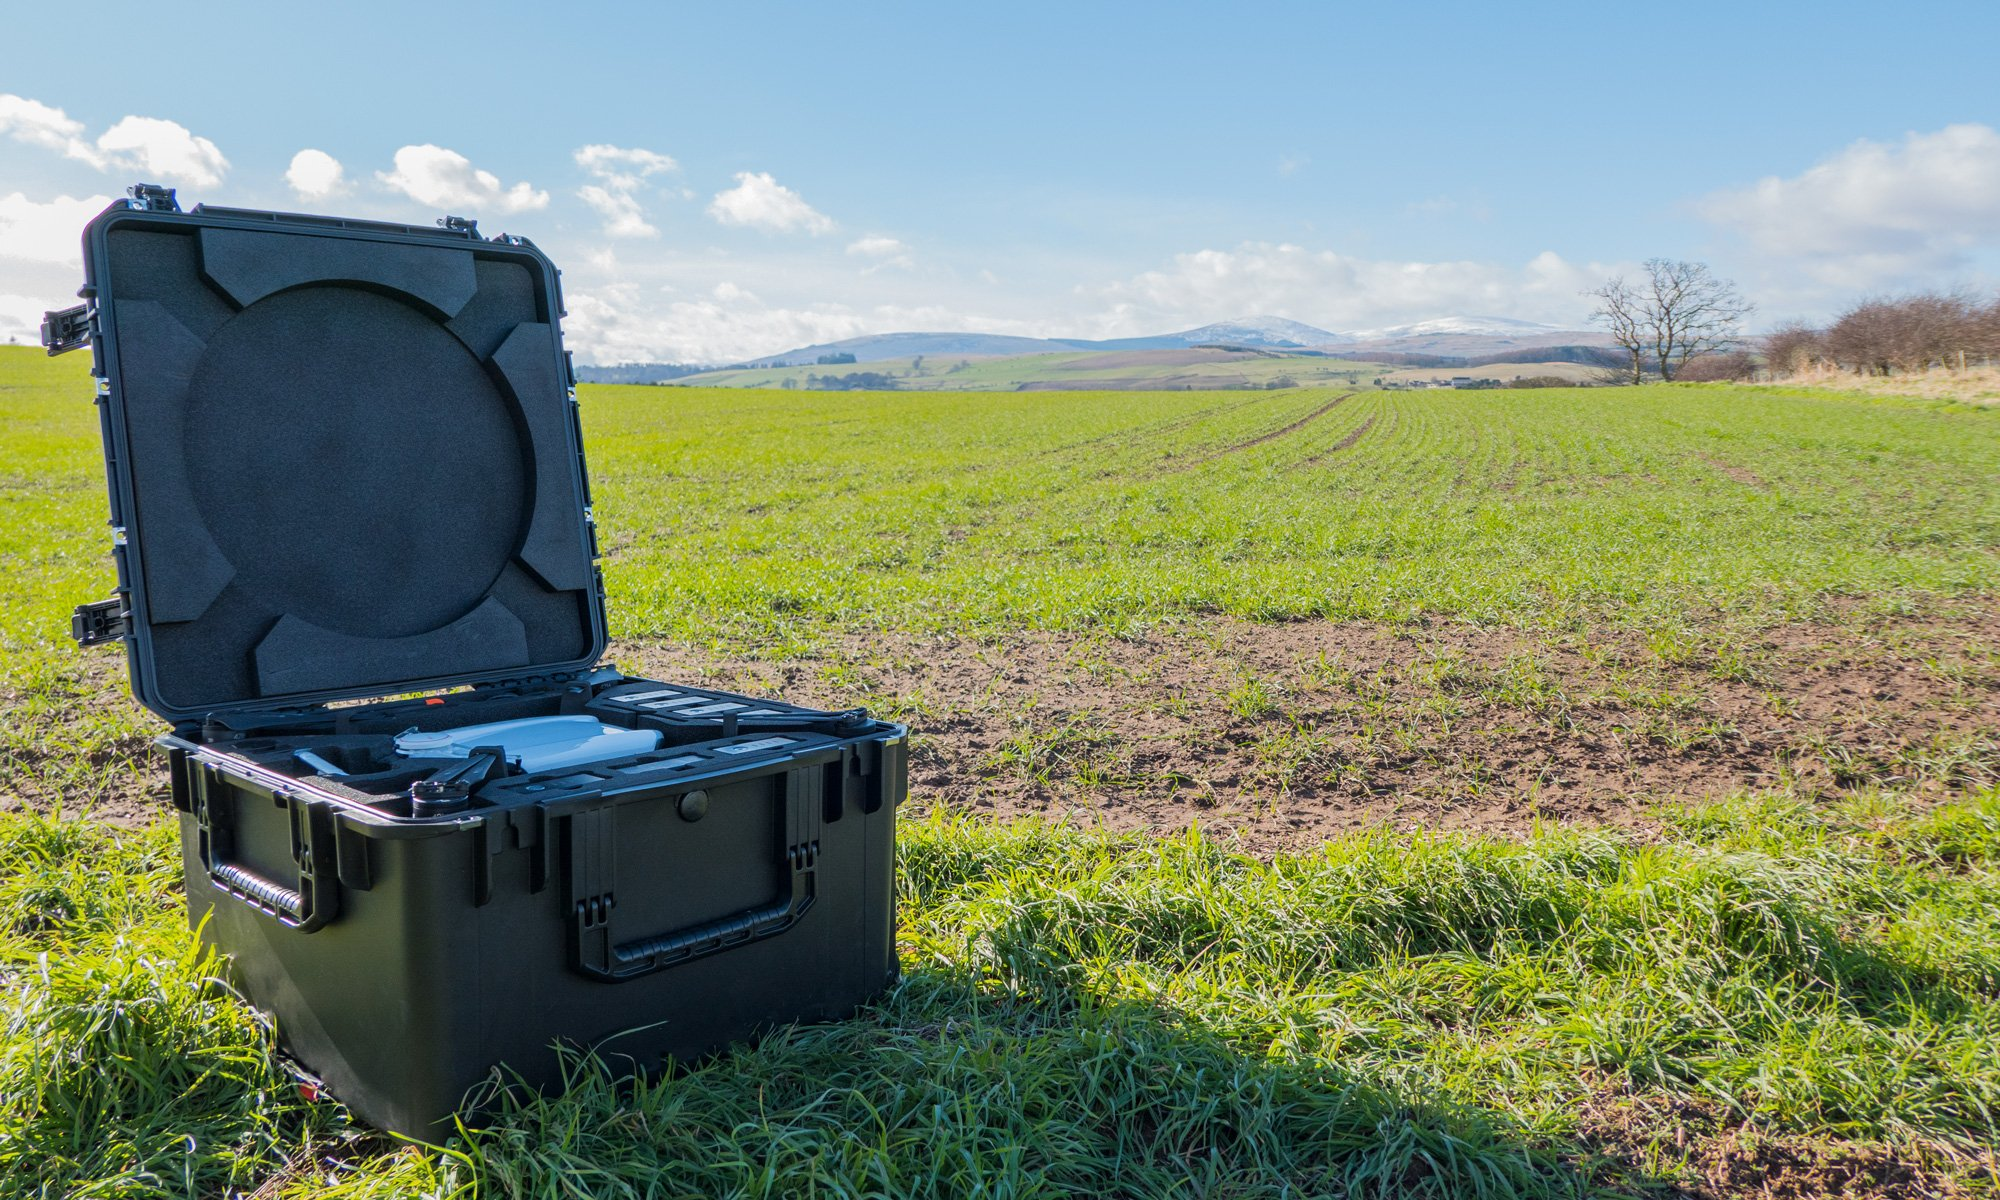 Storm Agriculture Drone open case in feild